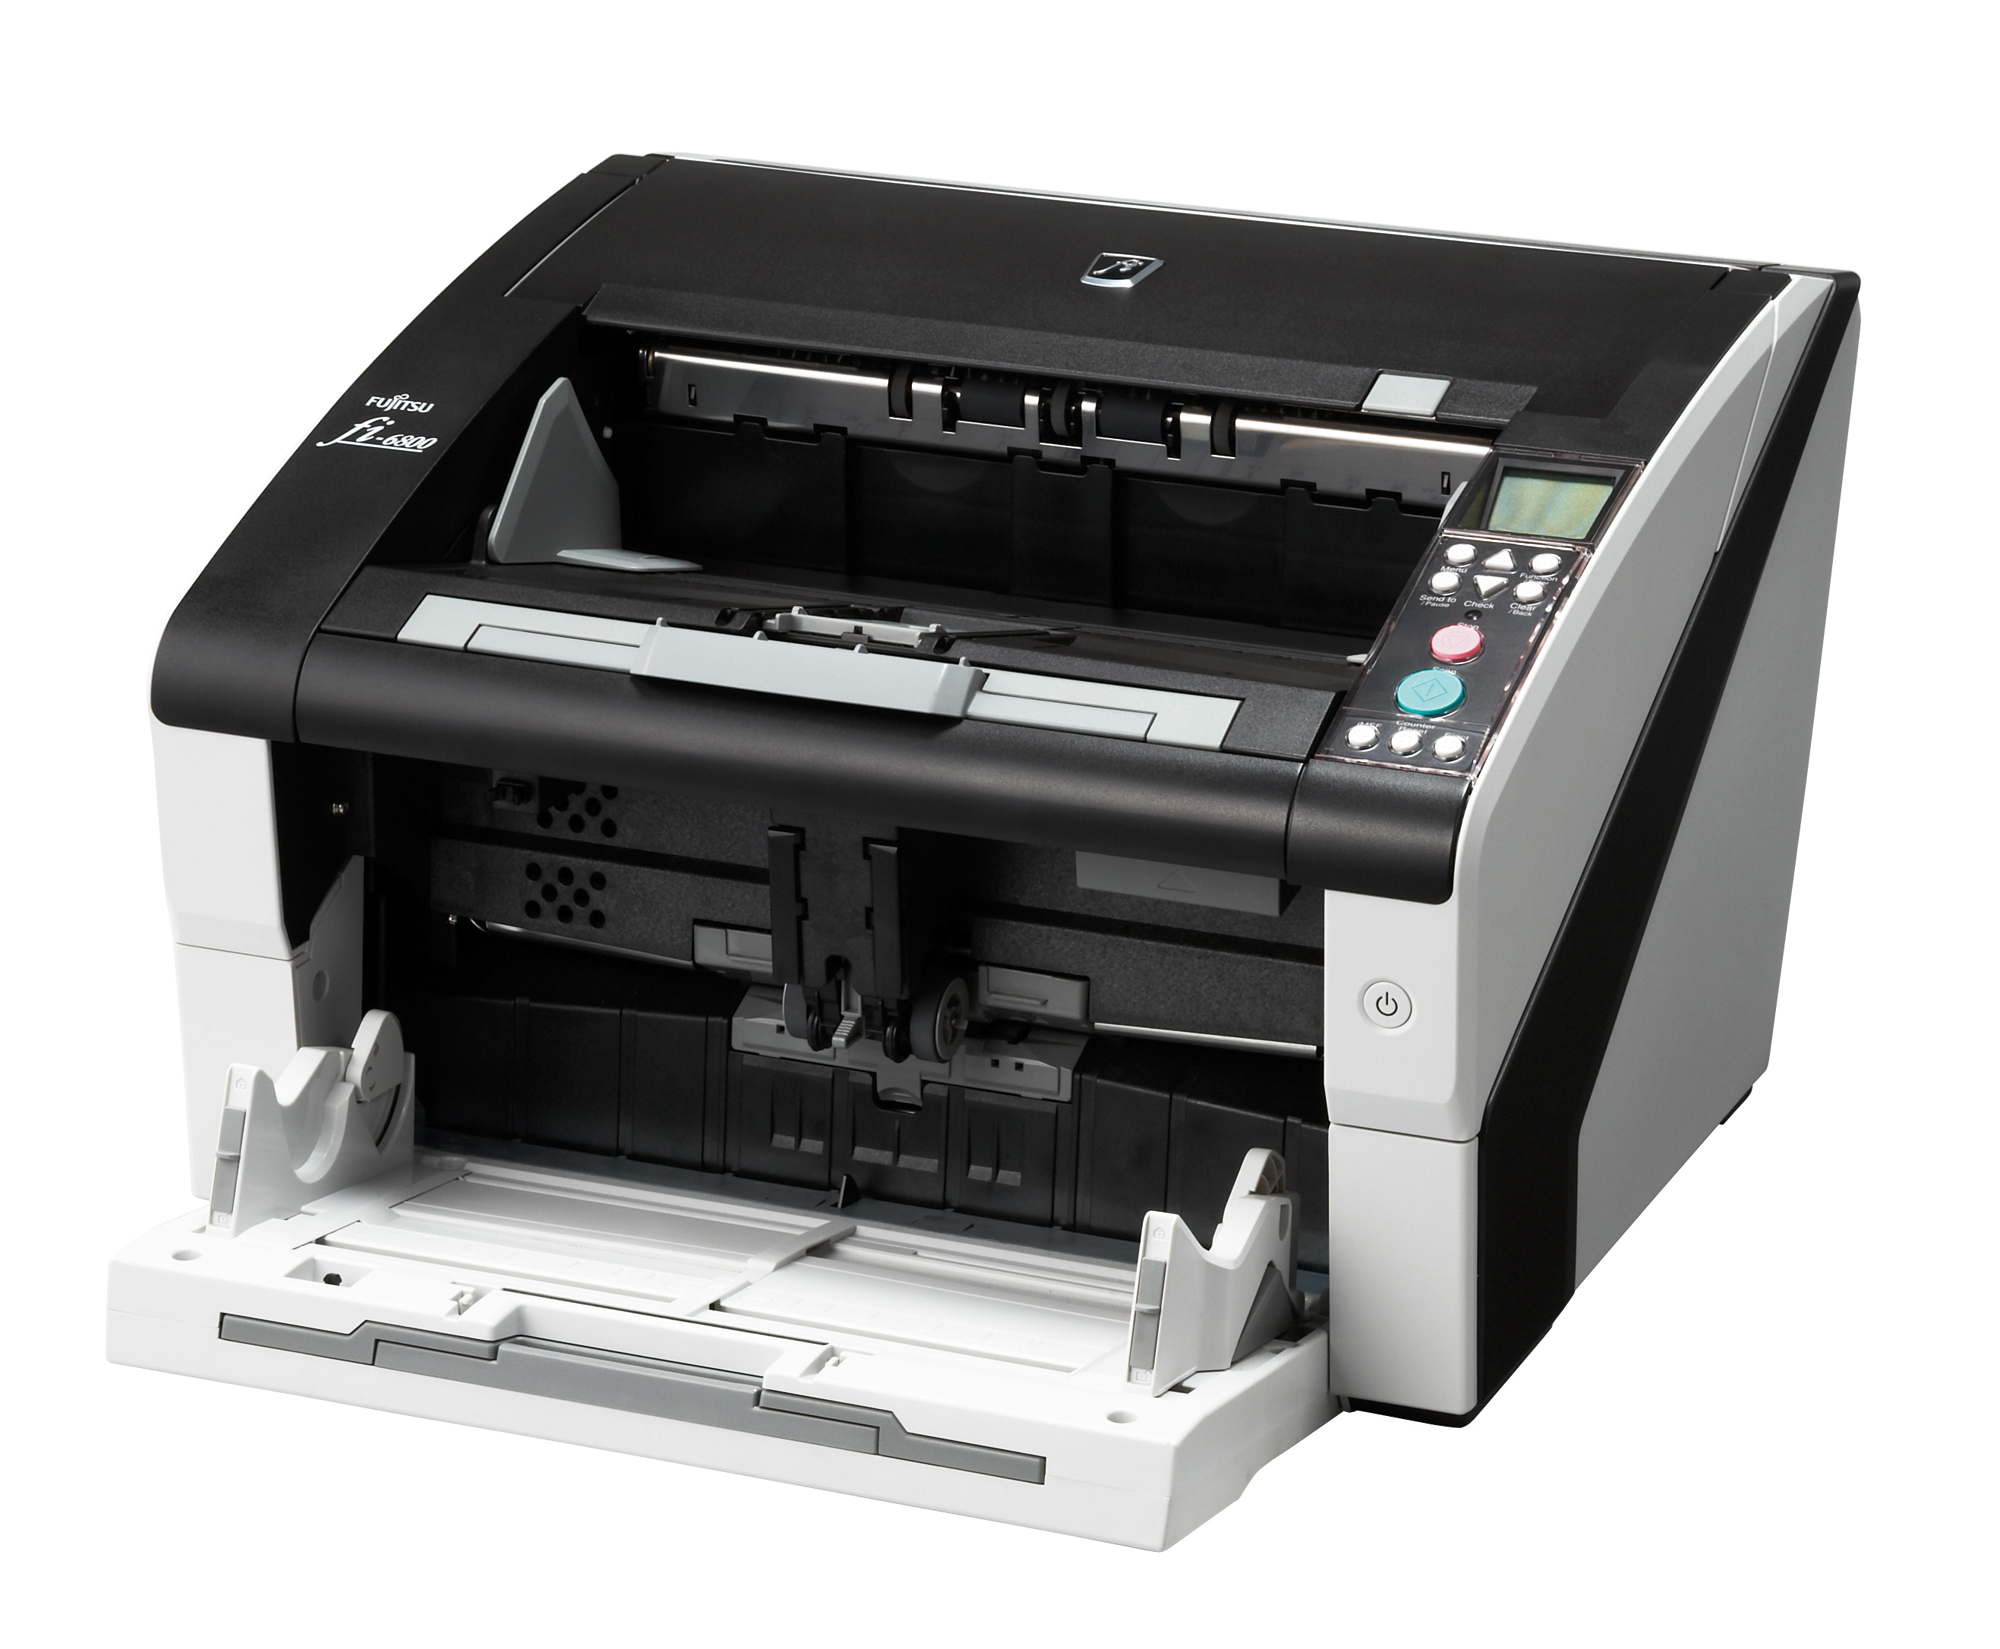 Fujitsu fi-6800 Scanner | CEO Image Systems